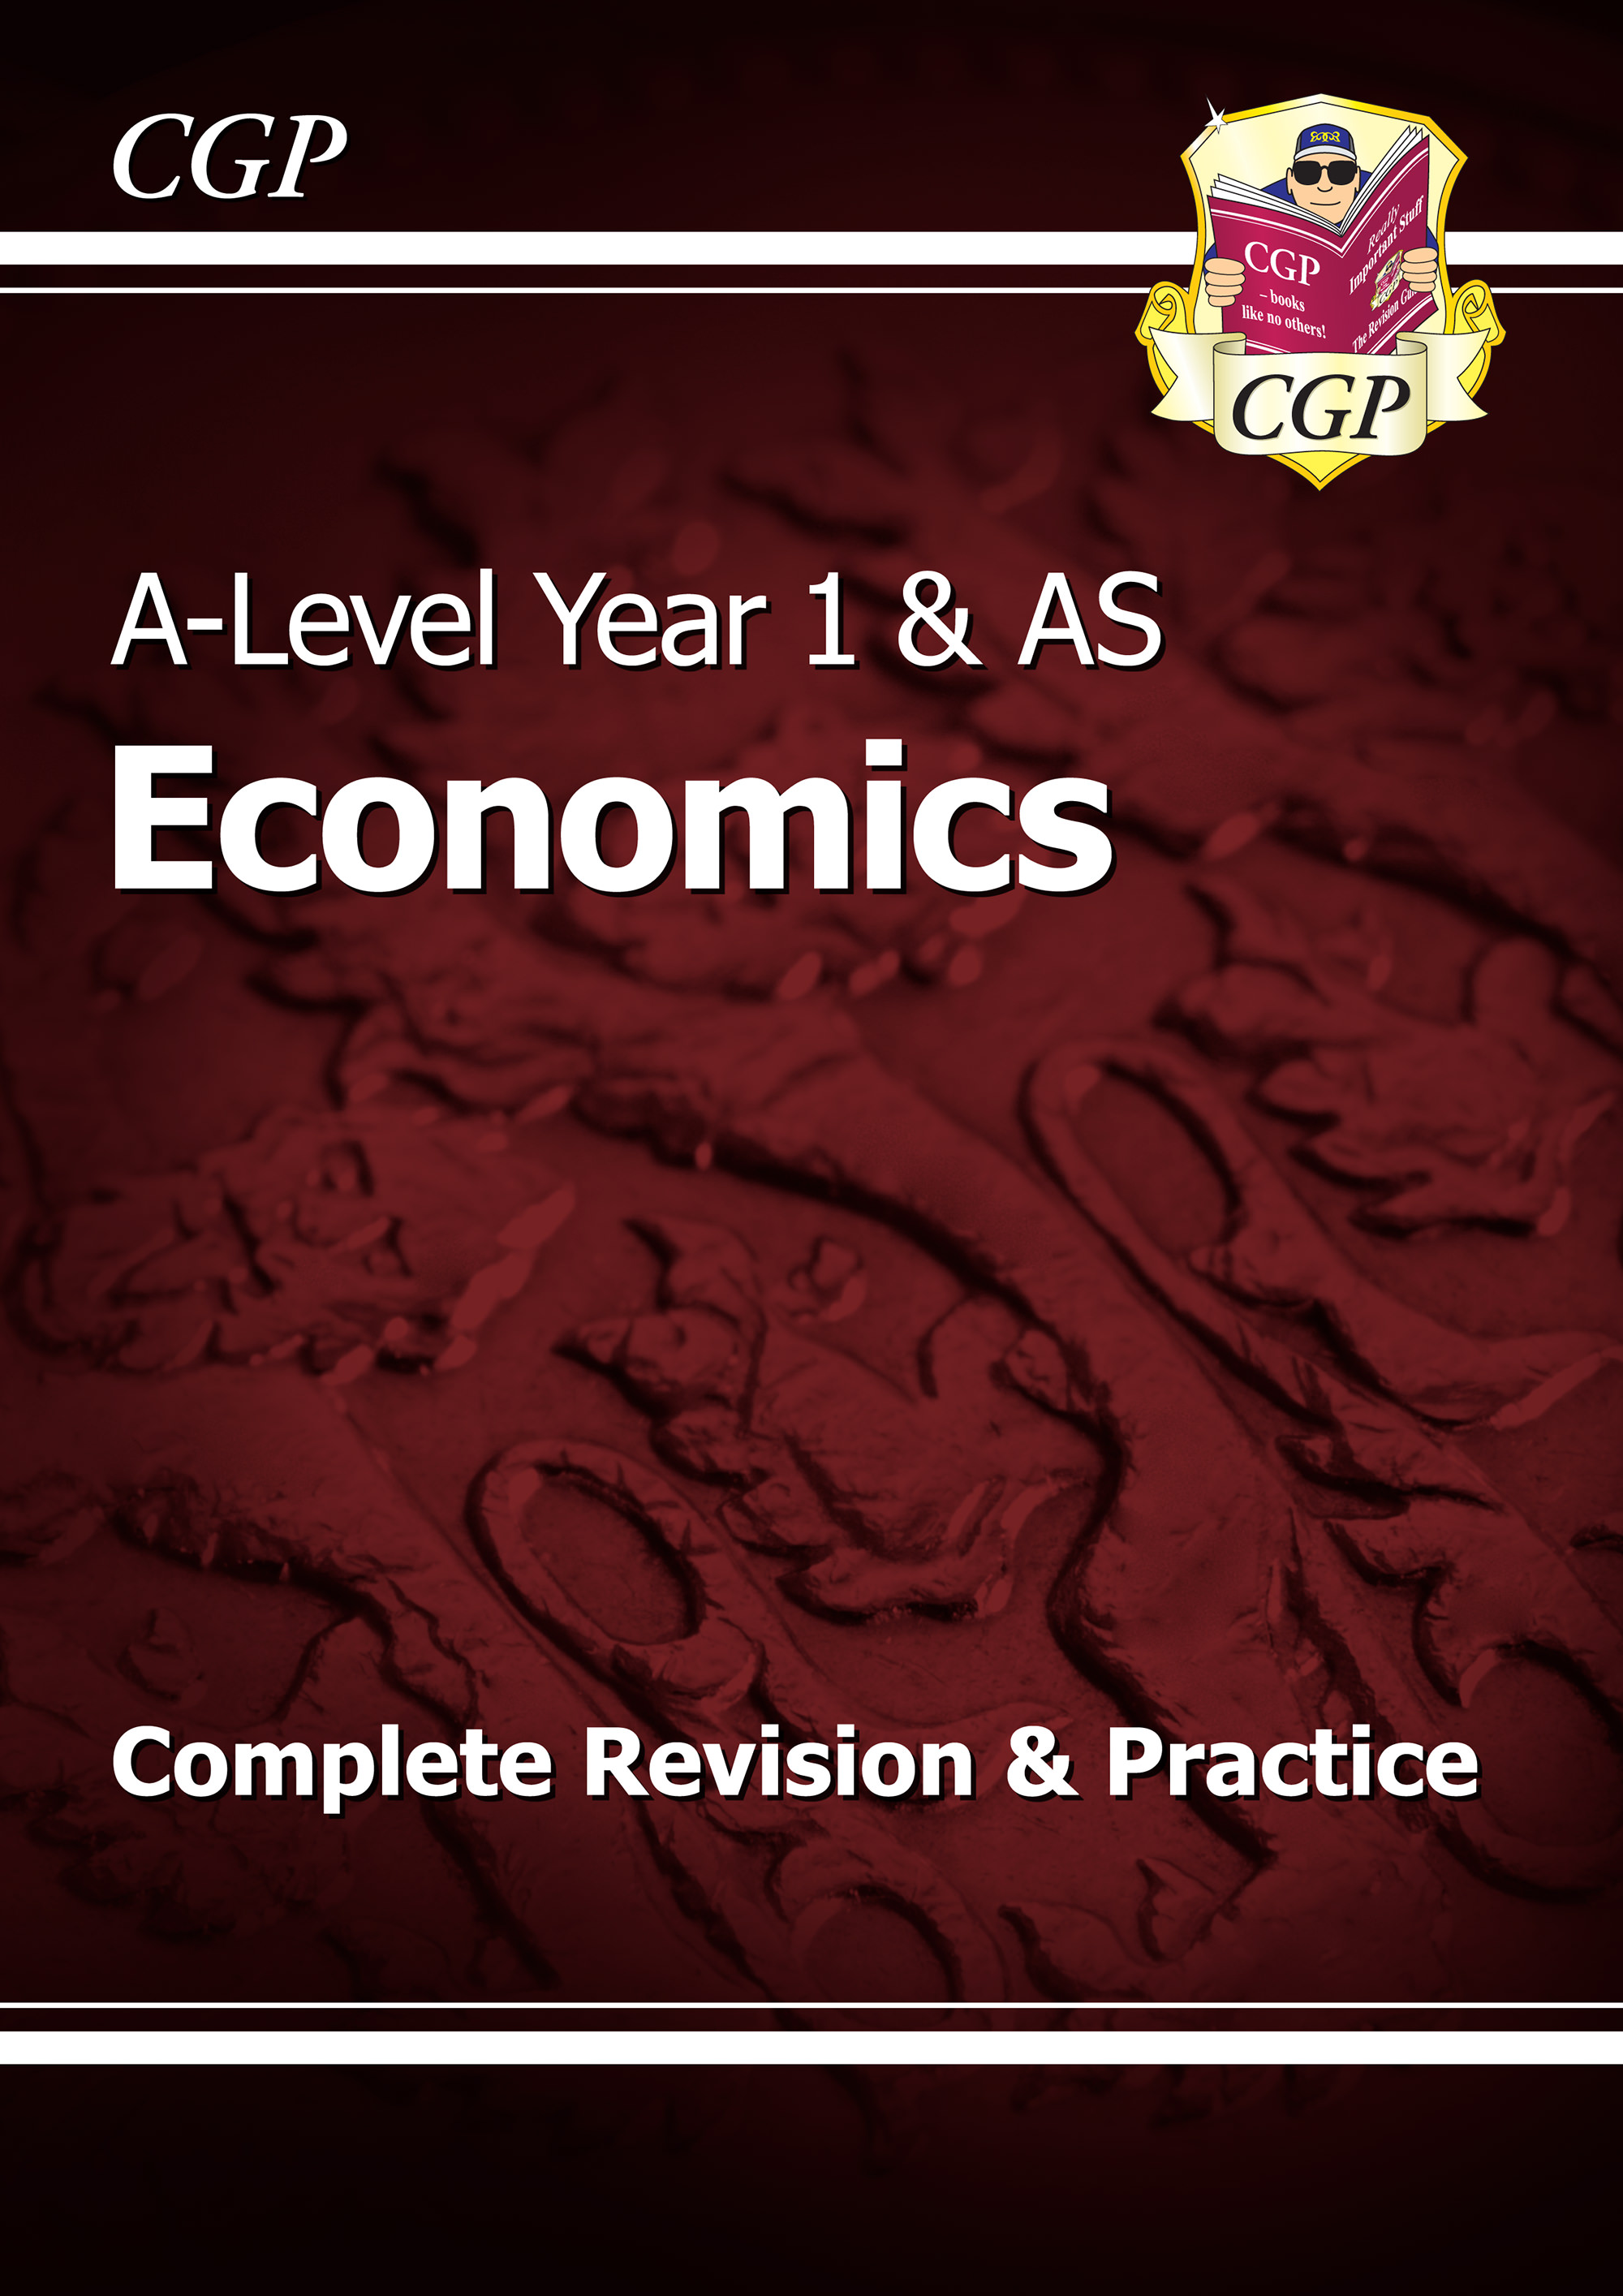 EKHR52 - A-Level Economics: Year 1 & AS Complete Revision & Practice